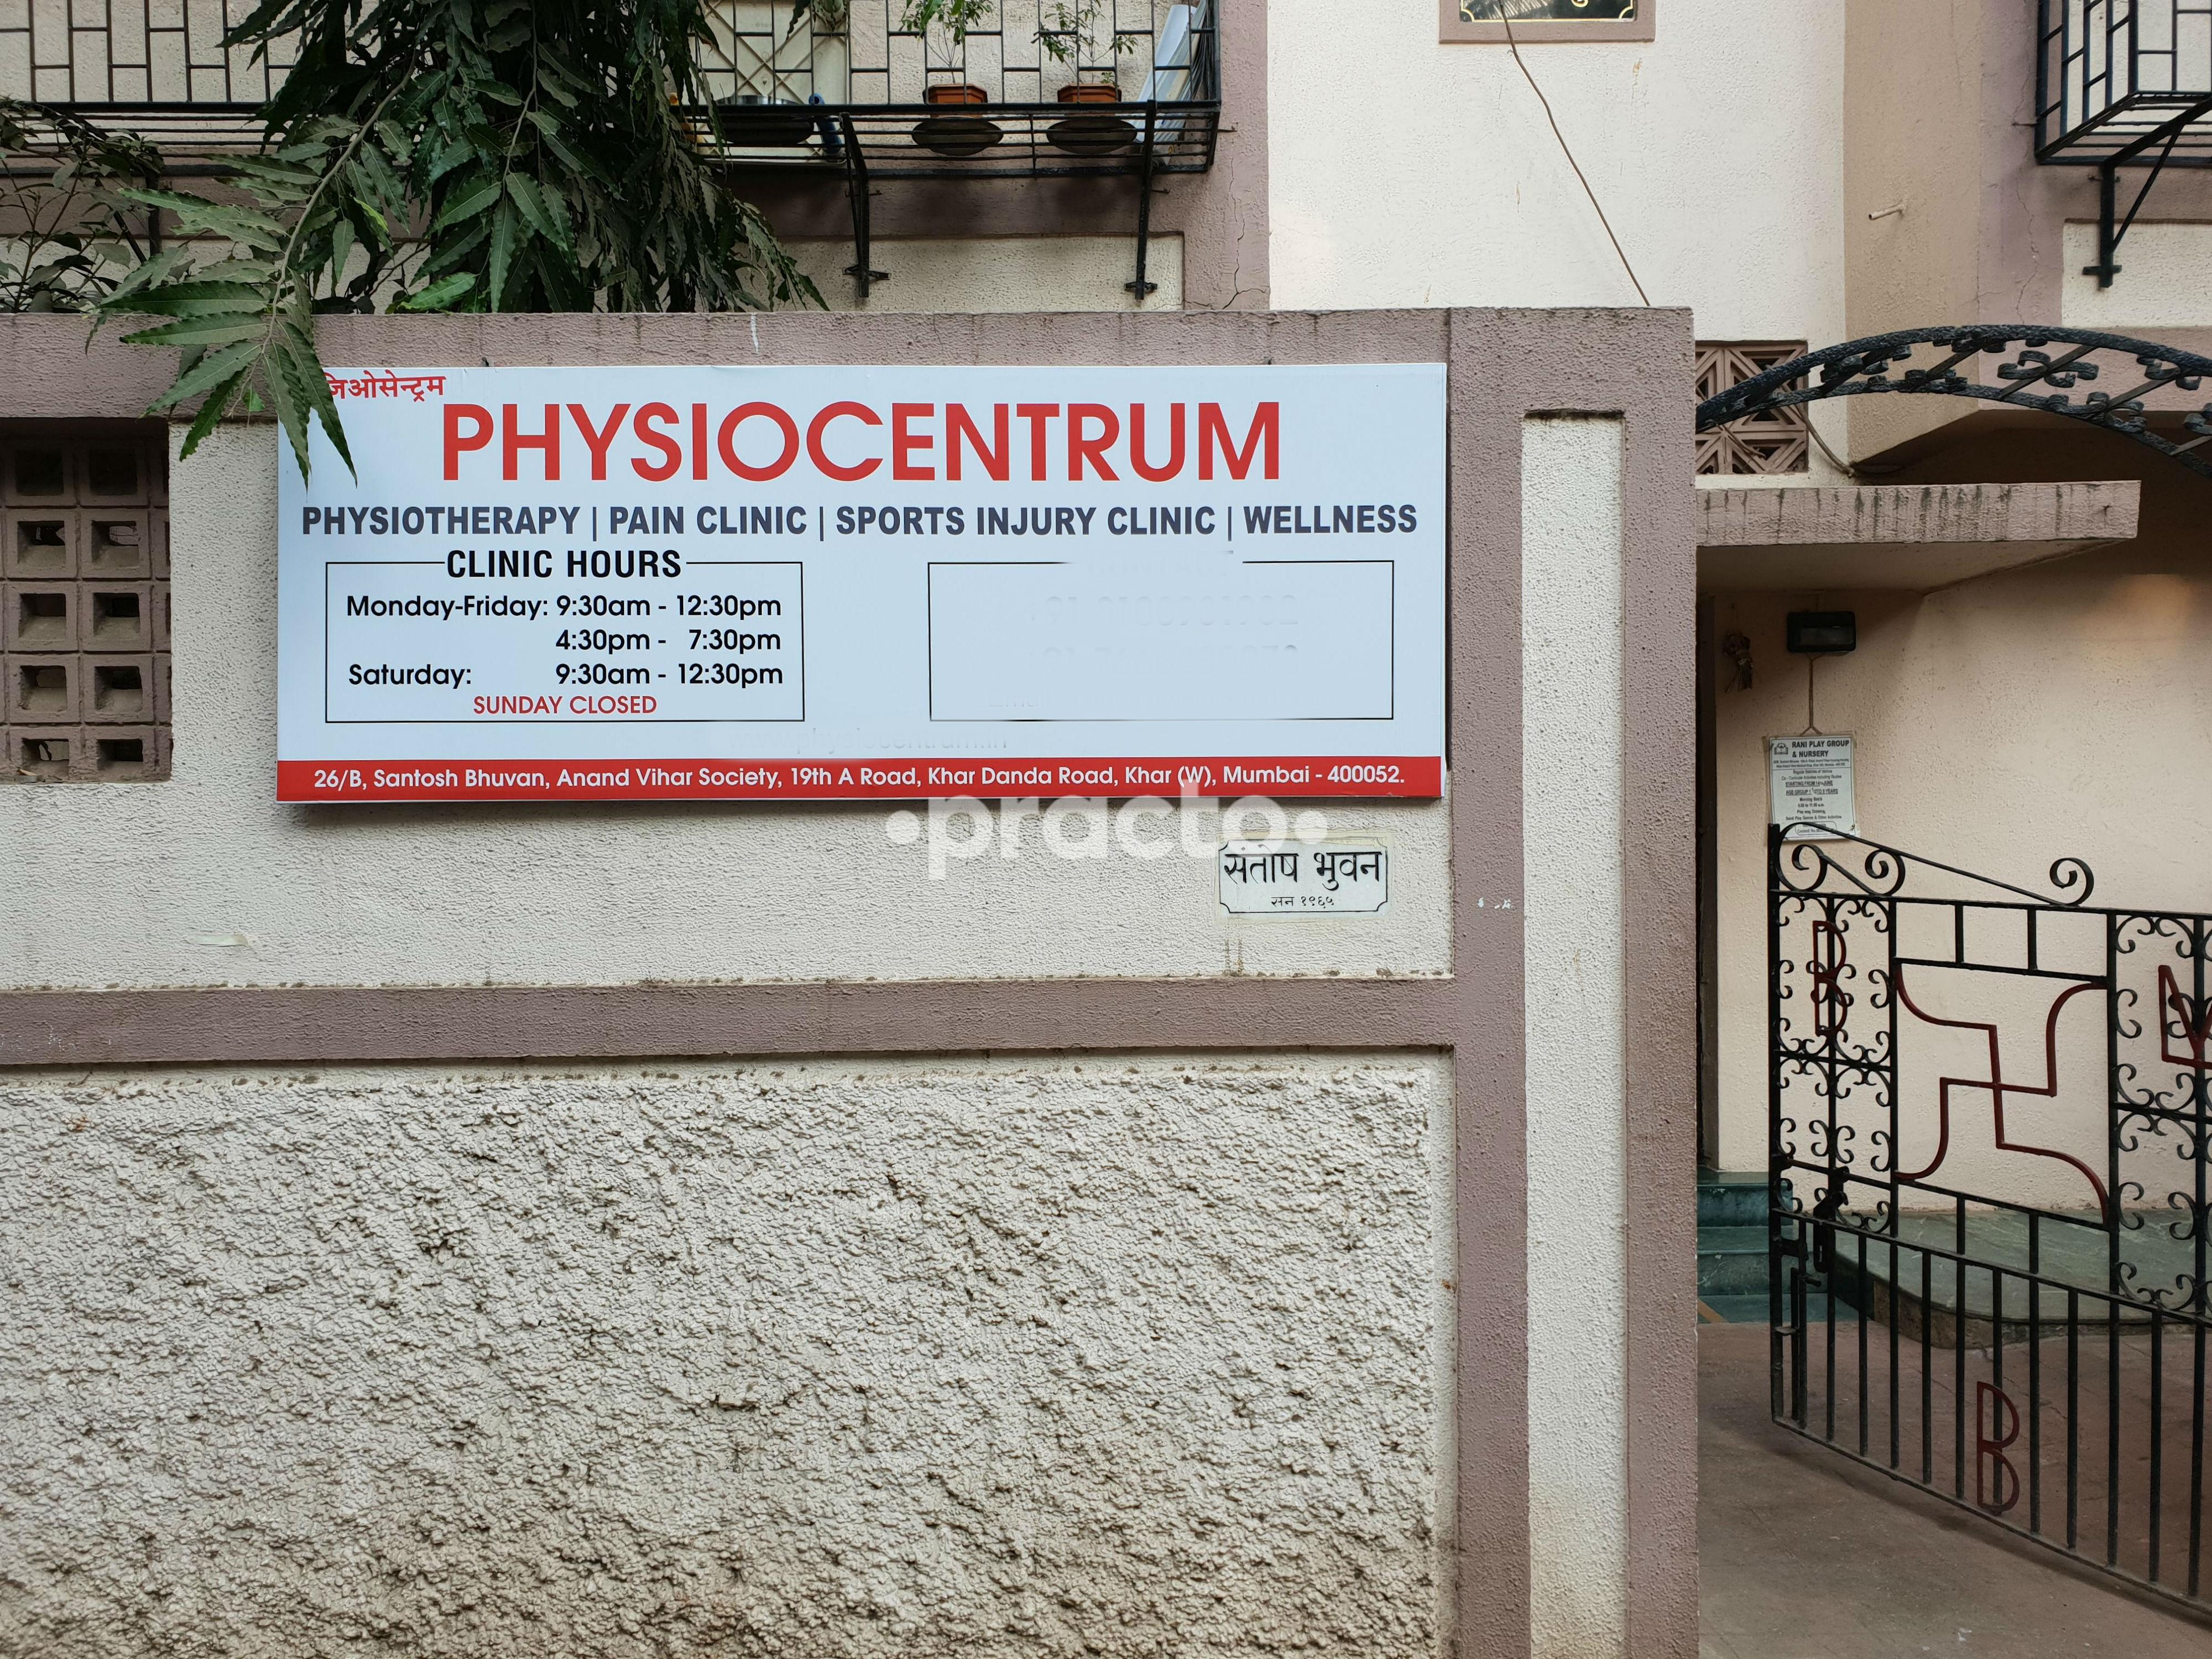 Best Physiotherapy Clinics in Khar West, Mumbai - Book